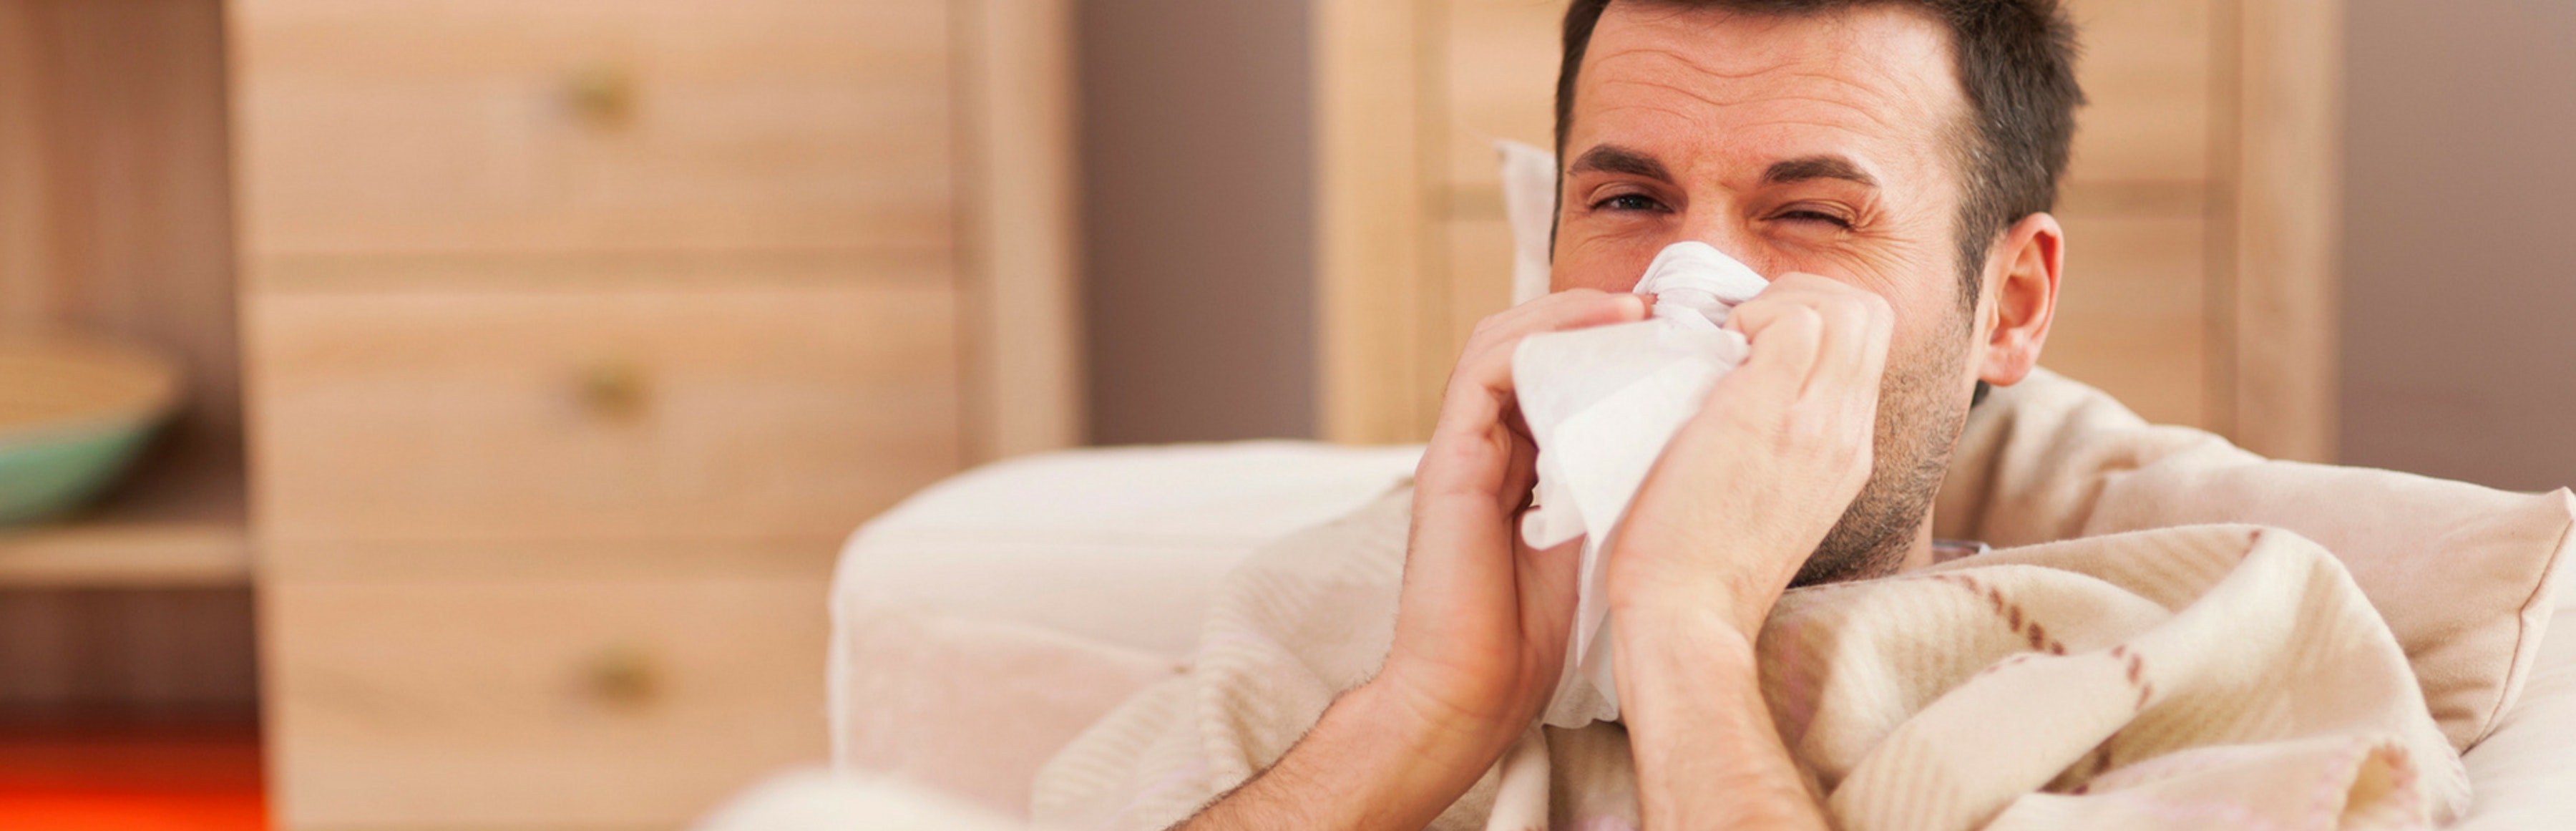 Dust Mites – All You Need To Know About Dust Mite Allergy Symptoms